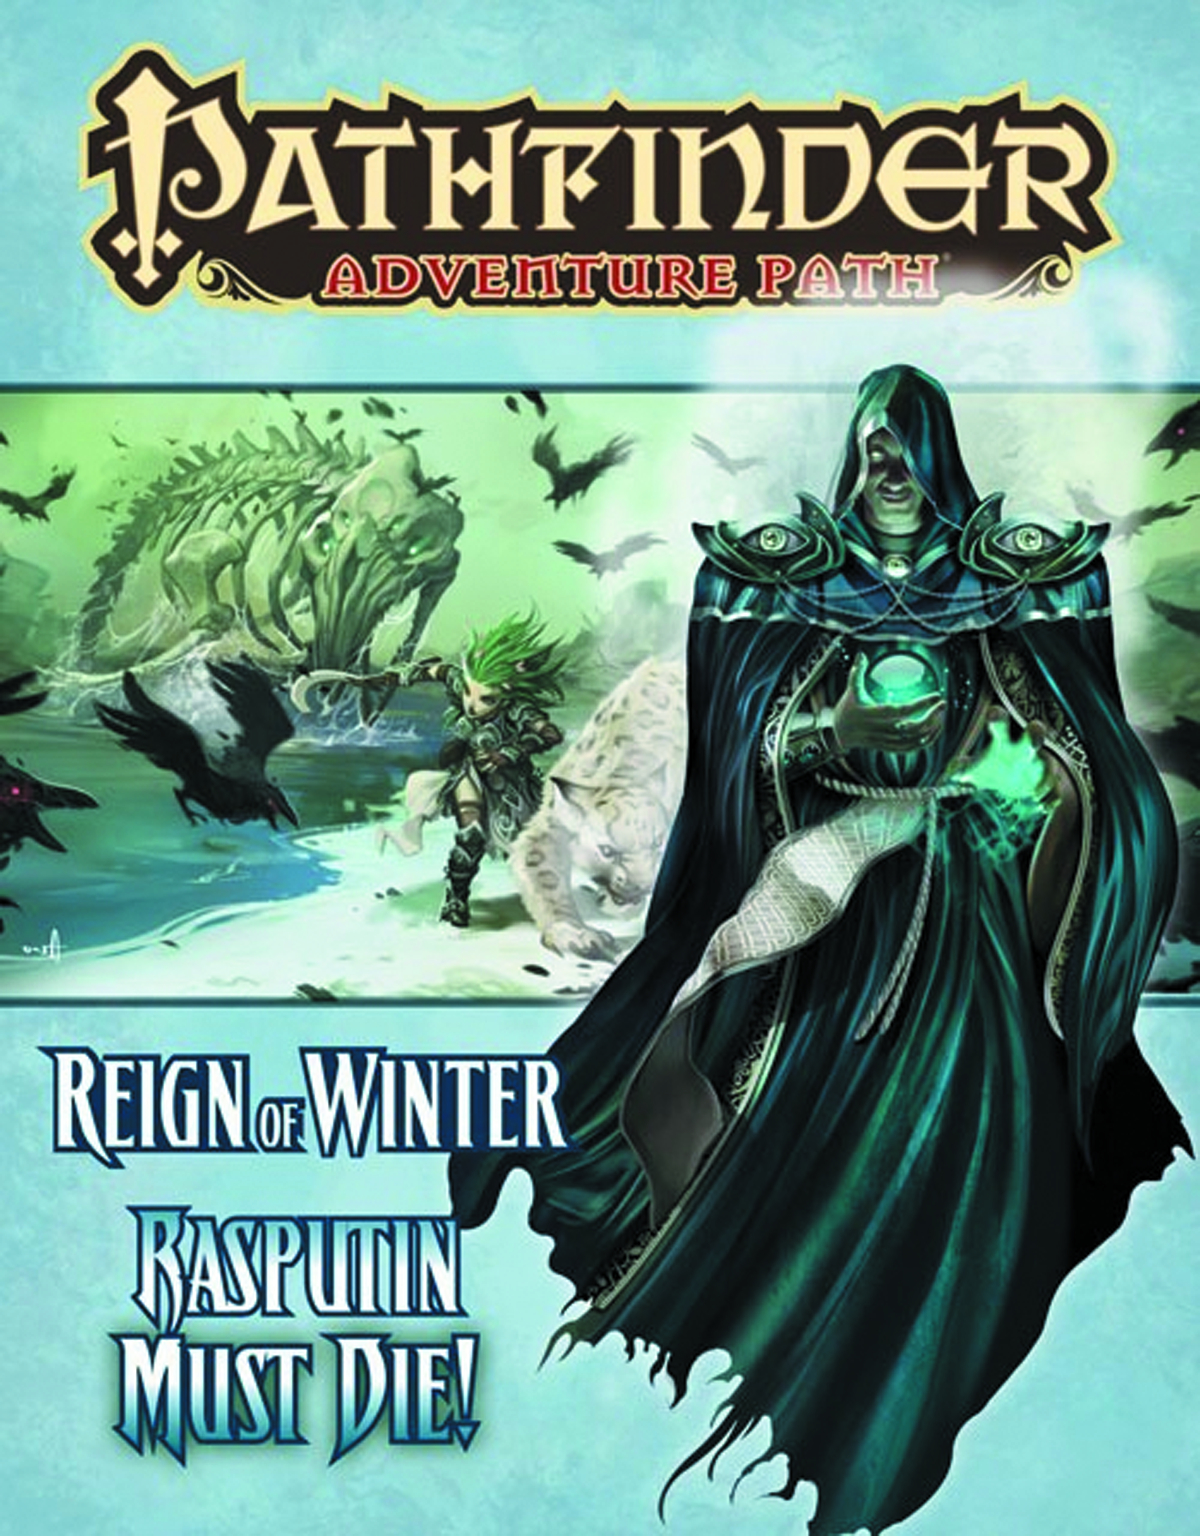 PATHFINDER ADV PATH REIGN OF WINTER PT 5 RASPUTIN MUST DIE